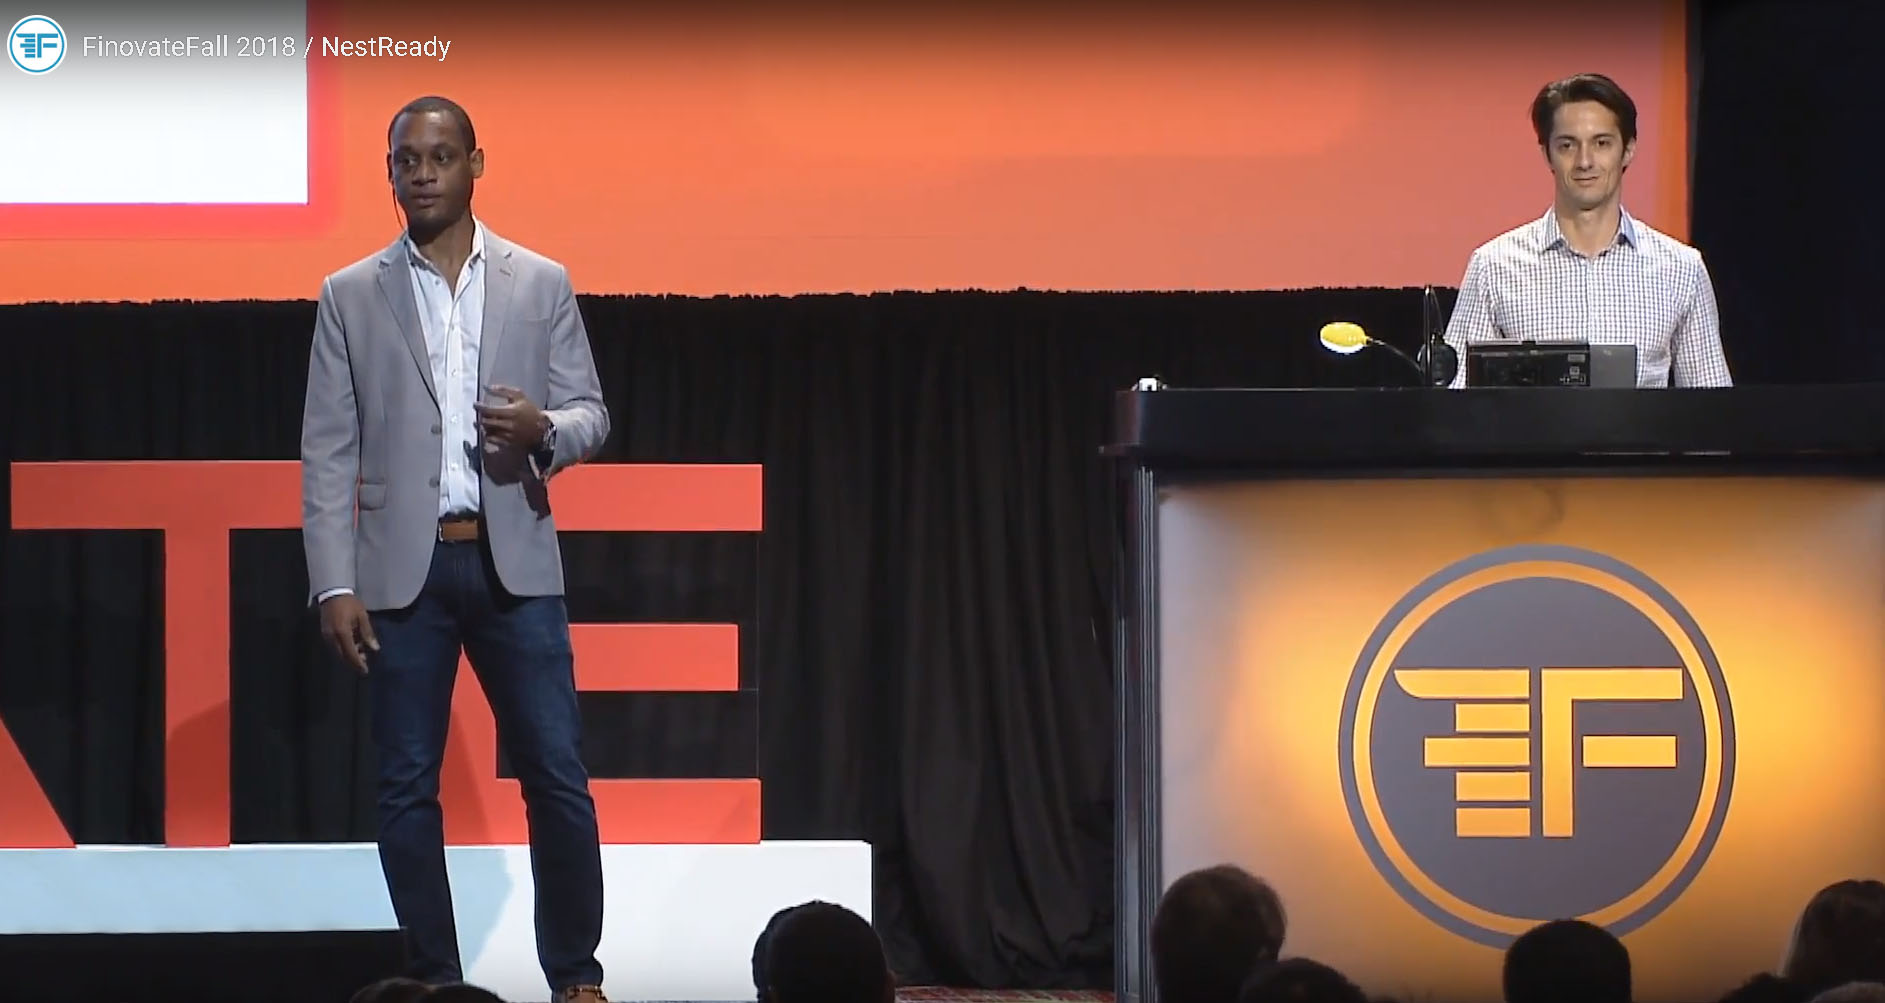 Finovate Demo Video Archives